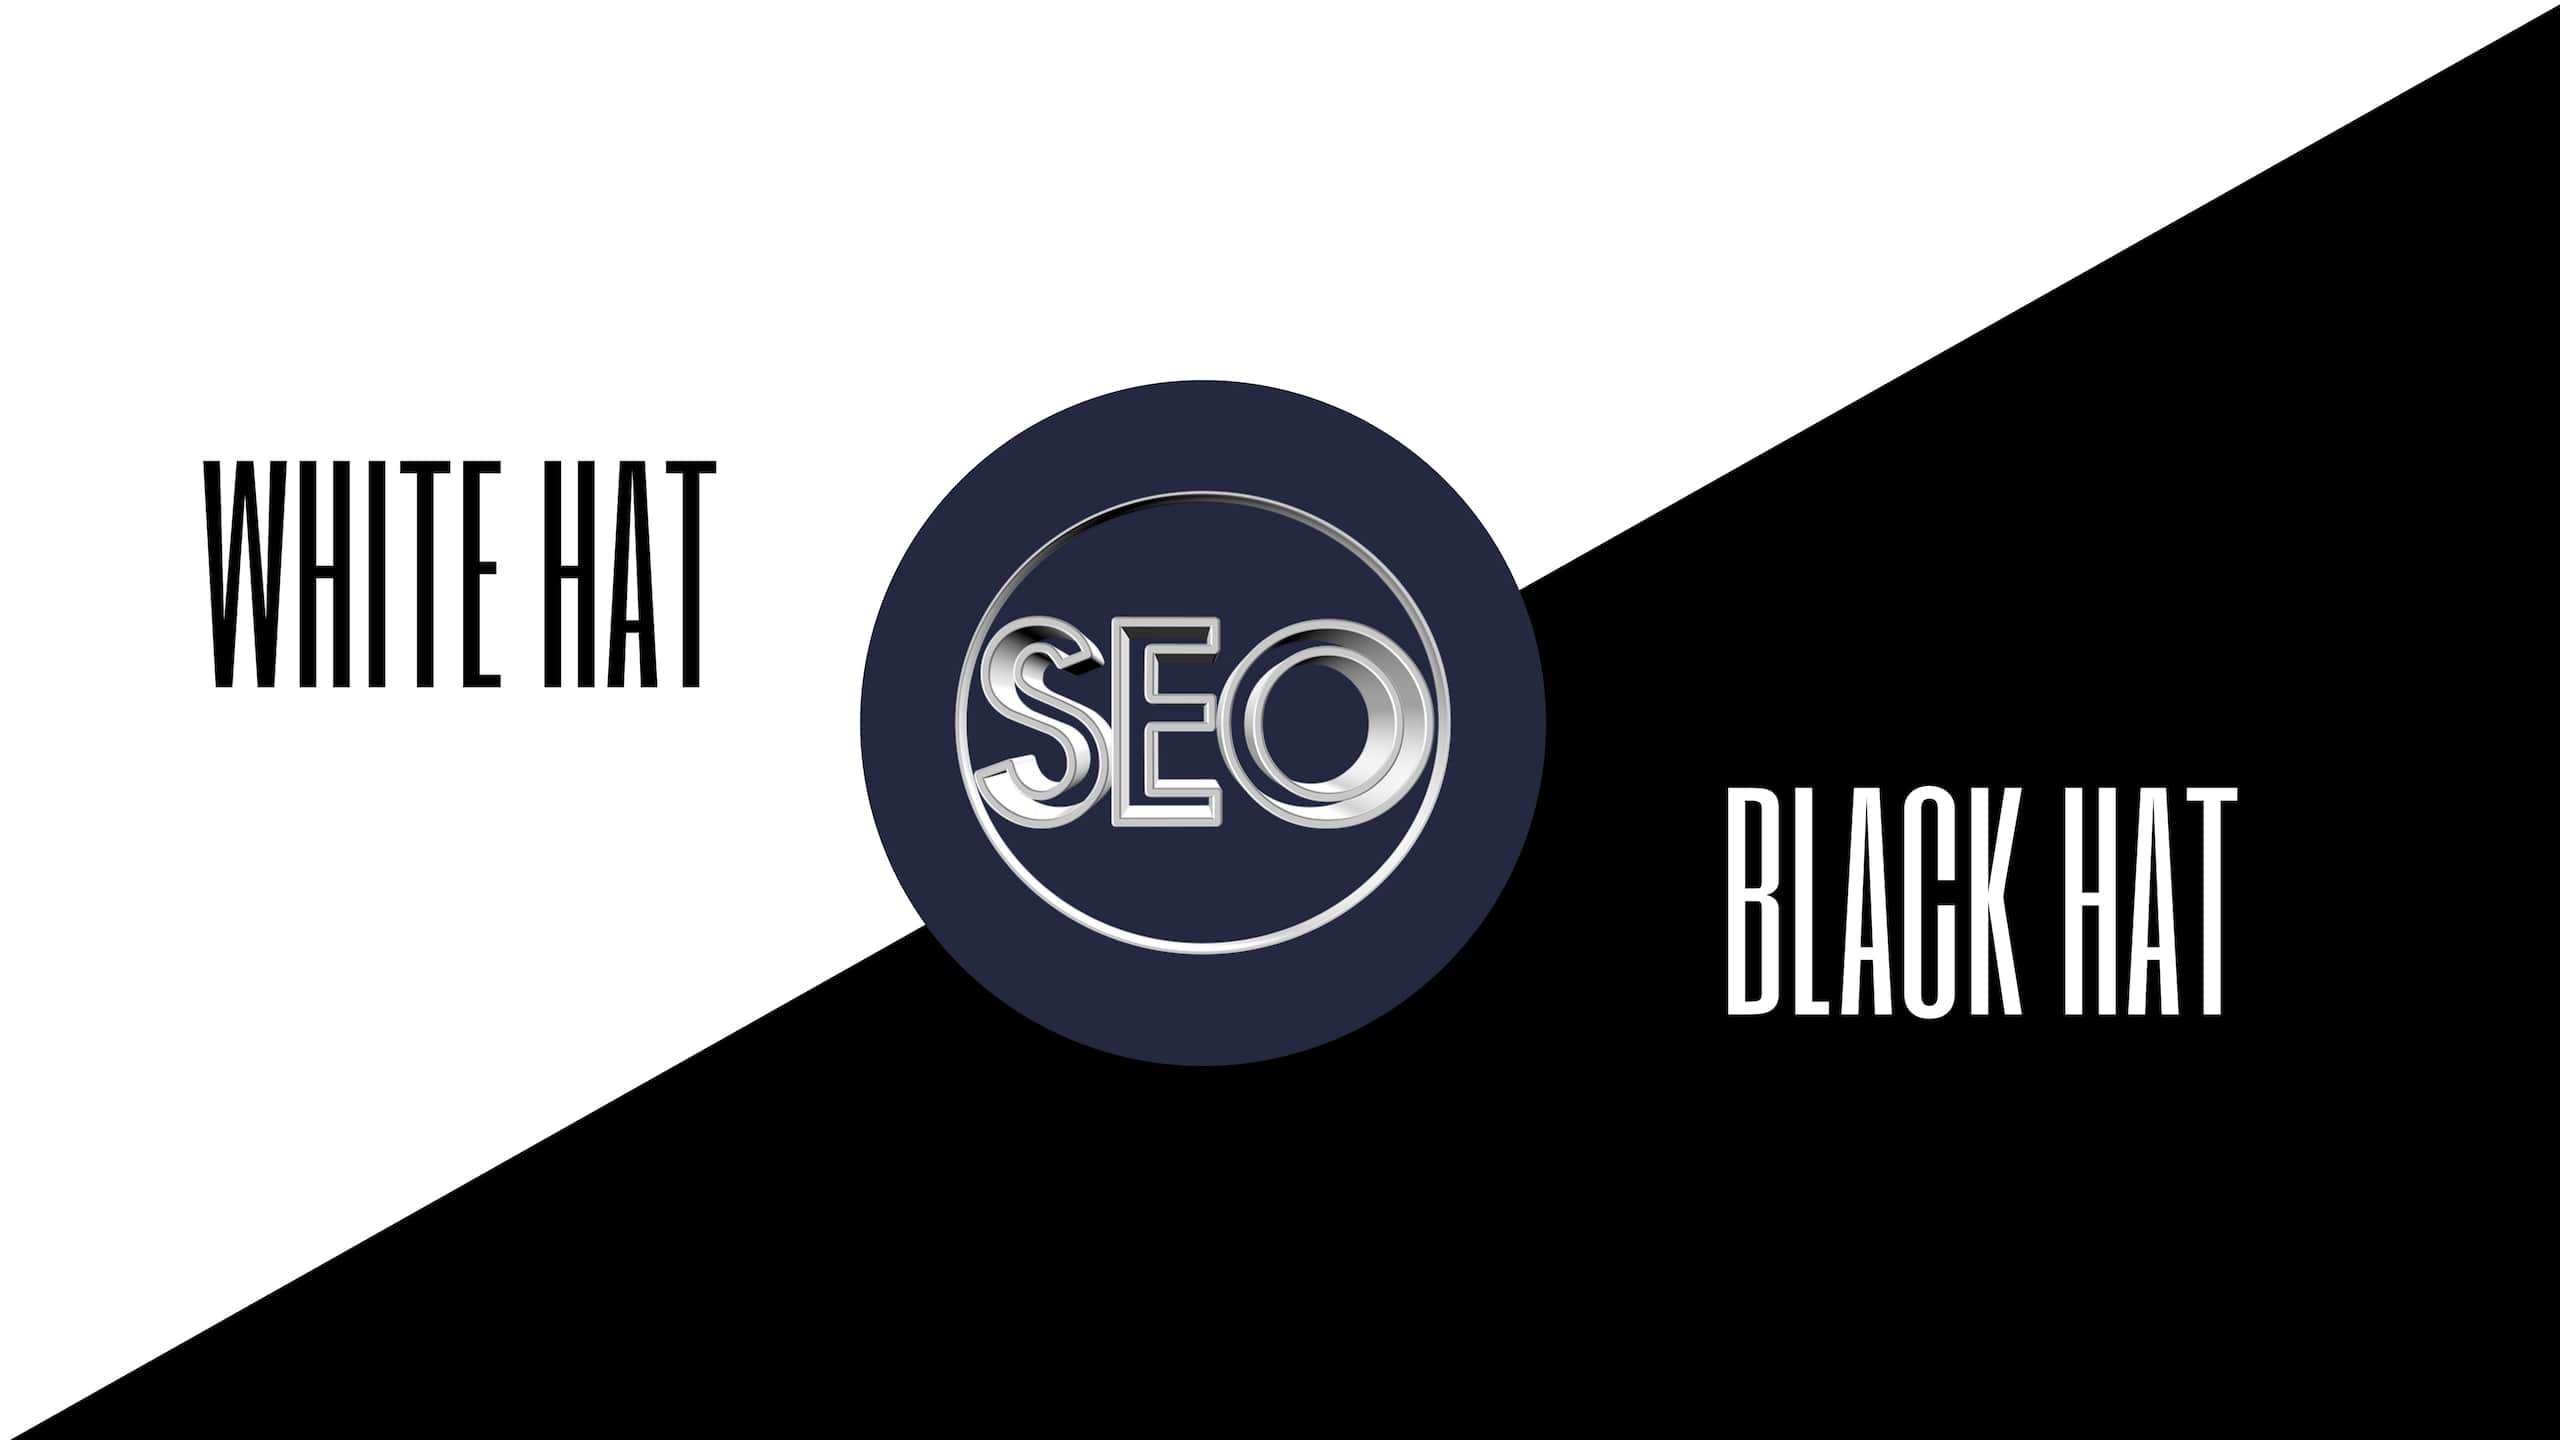 Finding The Differences Between Black Hat And White Hat SEO  0f4bf5bd729e